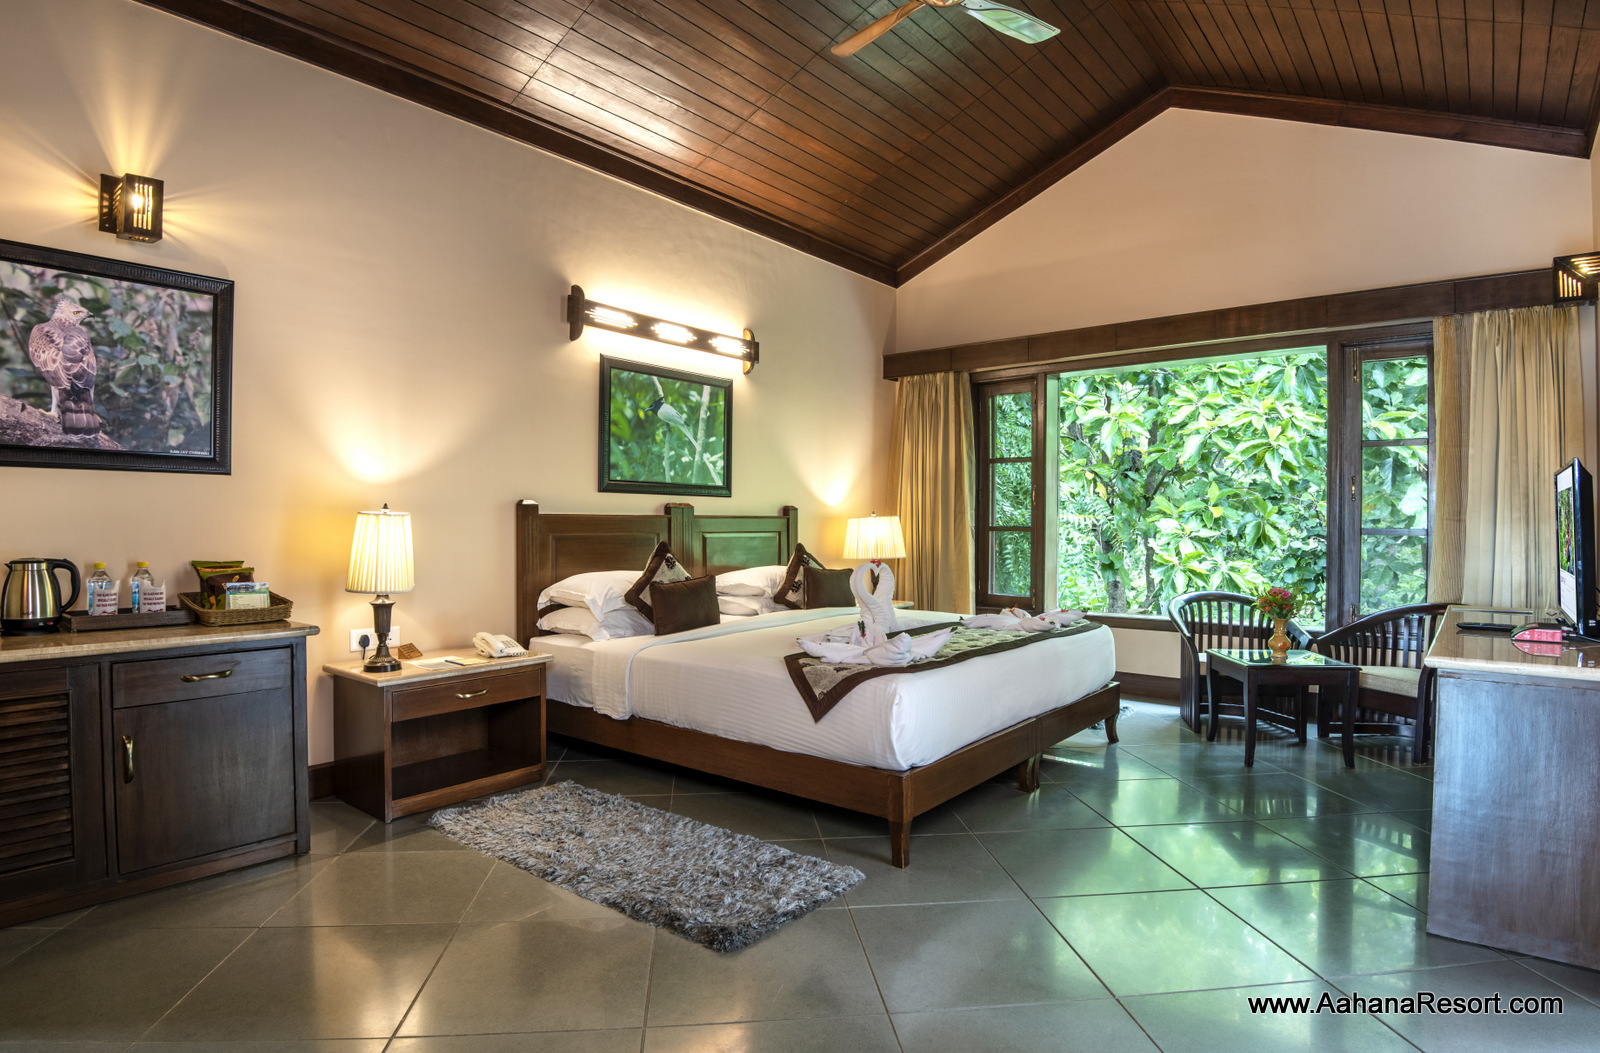 Hotels in Jim Corbett